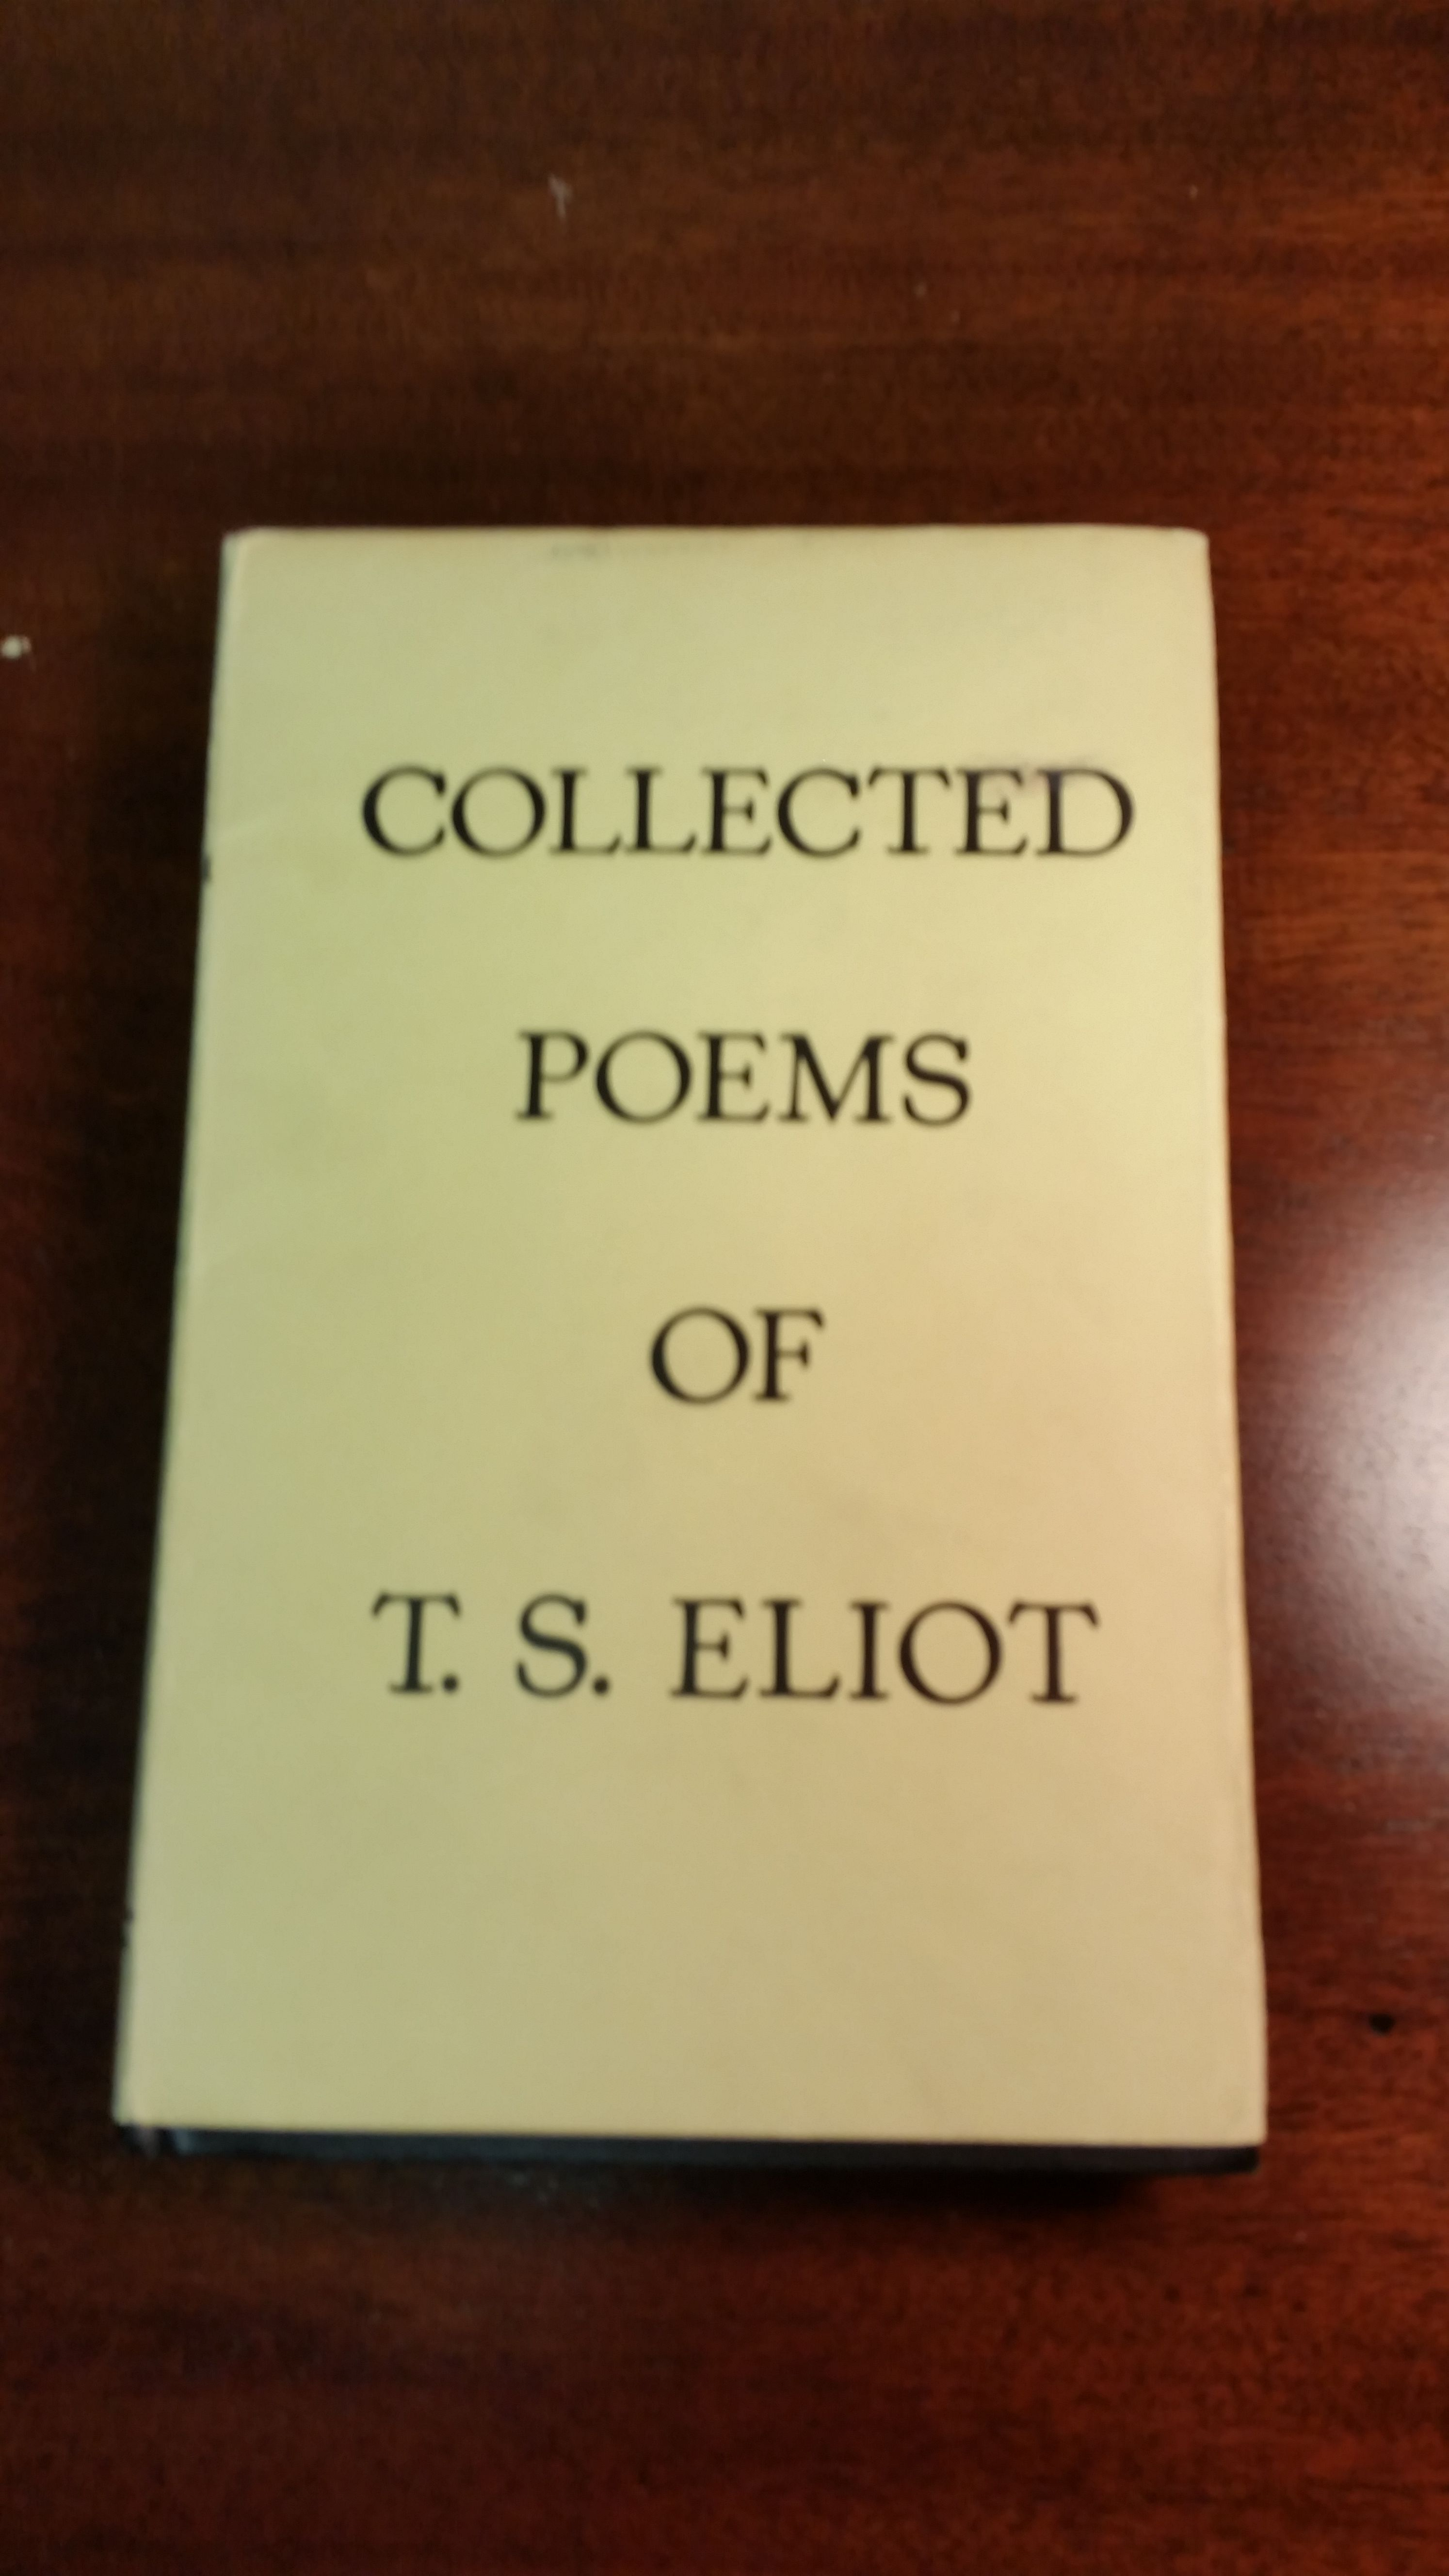 Collected Poems 1909 1935 Of Ts Eliot By Ts Eliot Signed First Edition 1936 From Blitzen Books And Bibliocom